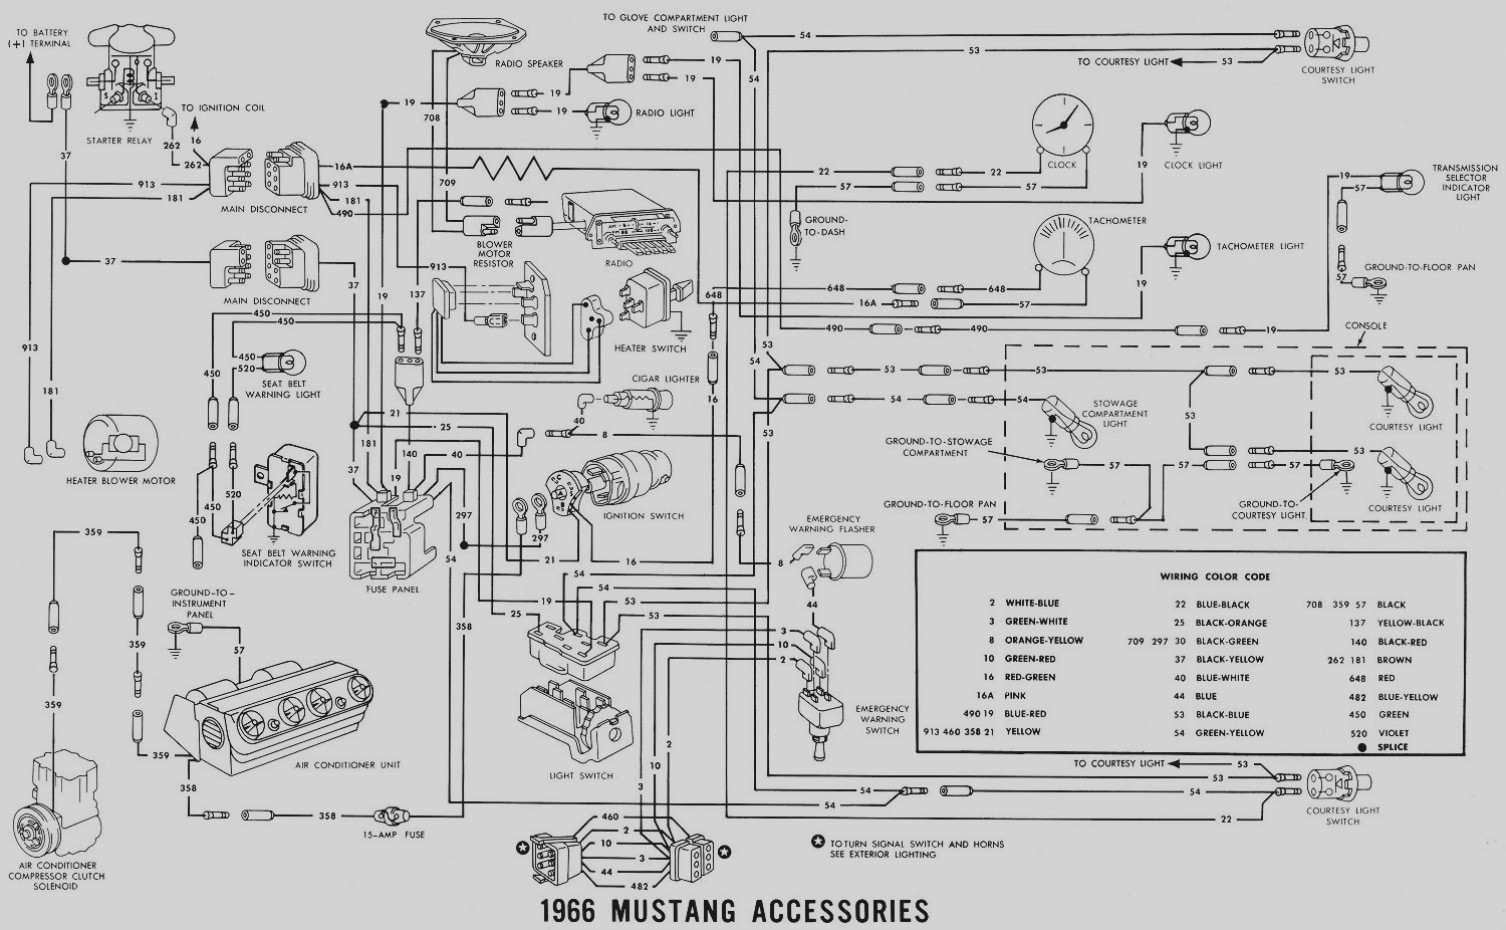 Courtesy Light Wiring Diagram For 1966 Mustang Library Tachometer Trusted Ford Heater